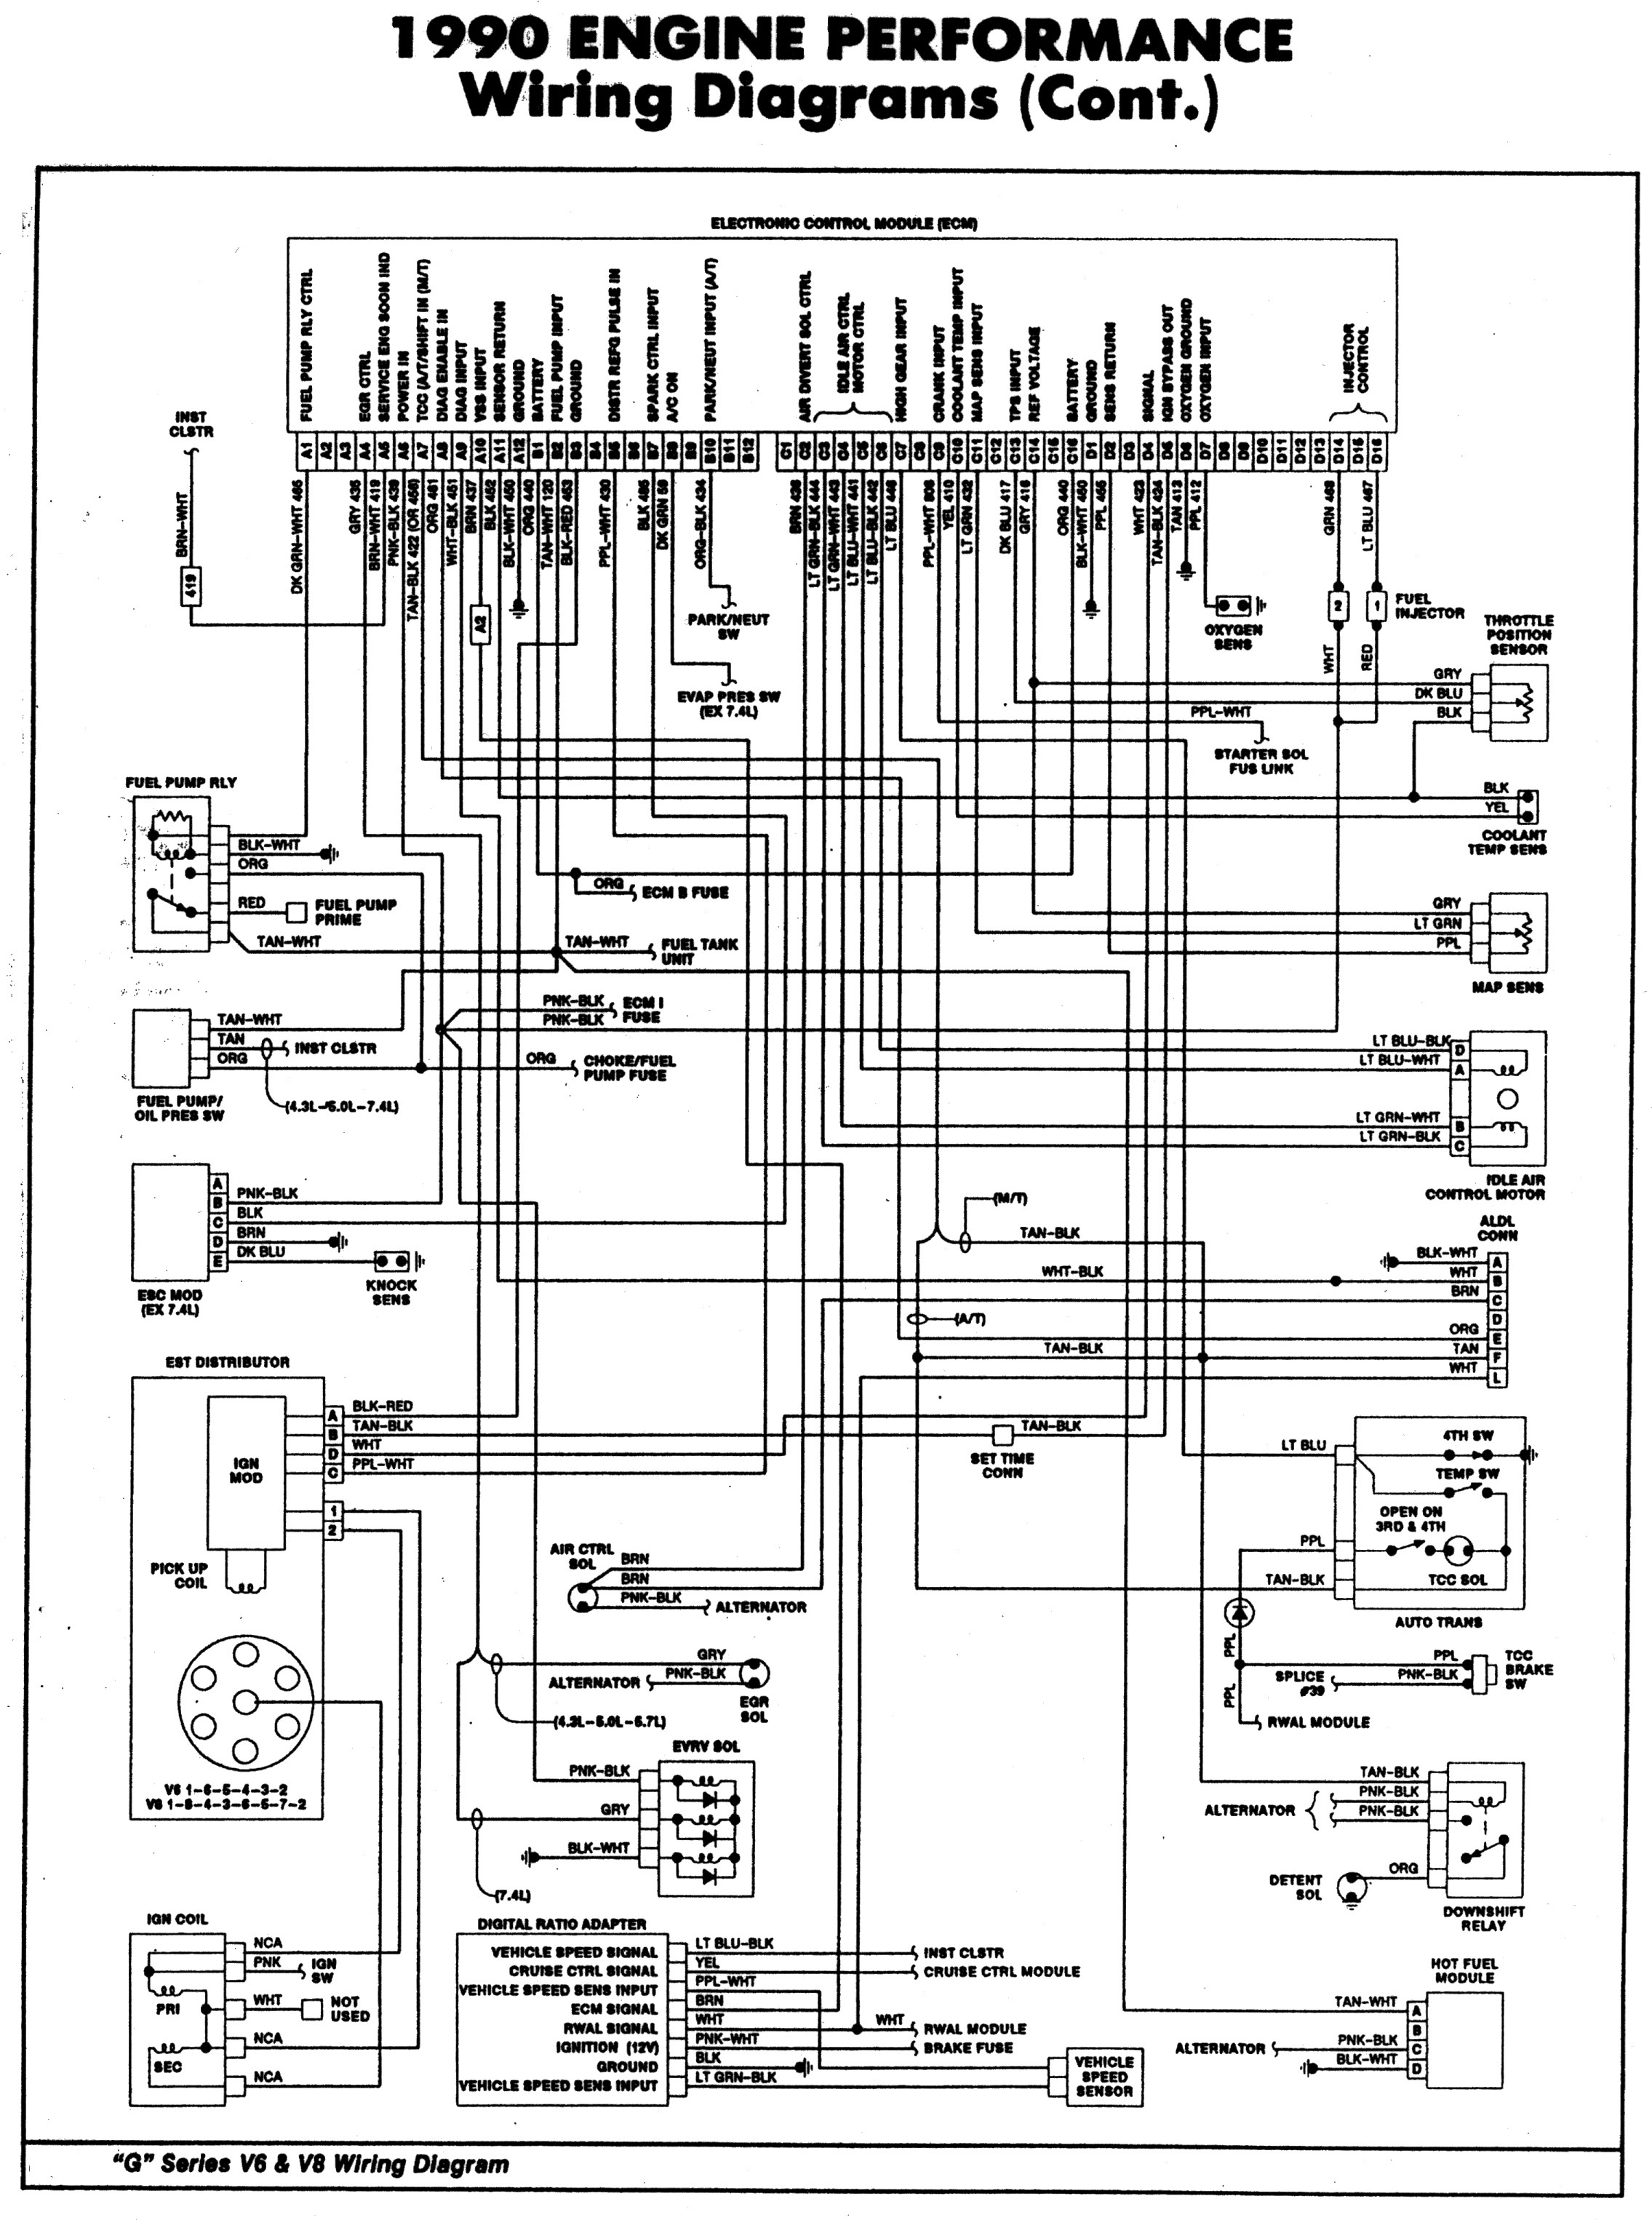 medium resolution of 1990 chevy van wiring diagram wiring diagrams value 1990 g20 chevy van wiring diagrams